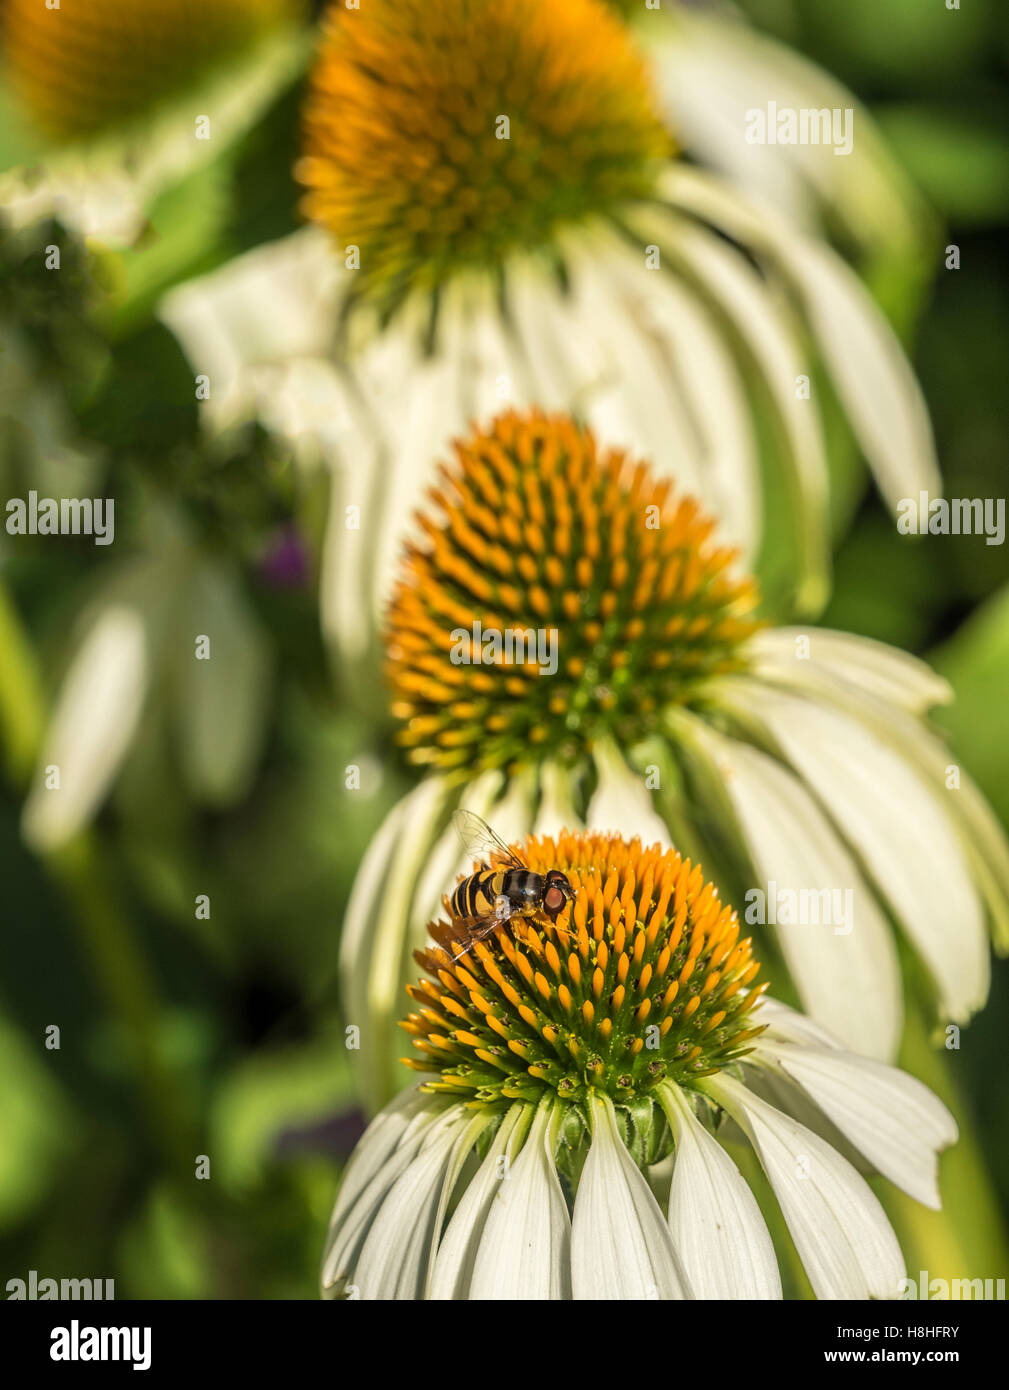 Hoverflies, sometimes called flower flies, or syrphid flies, make up the insect family Syrphidae - Stock Image